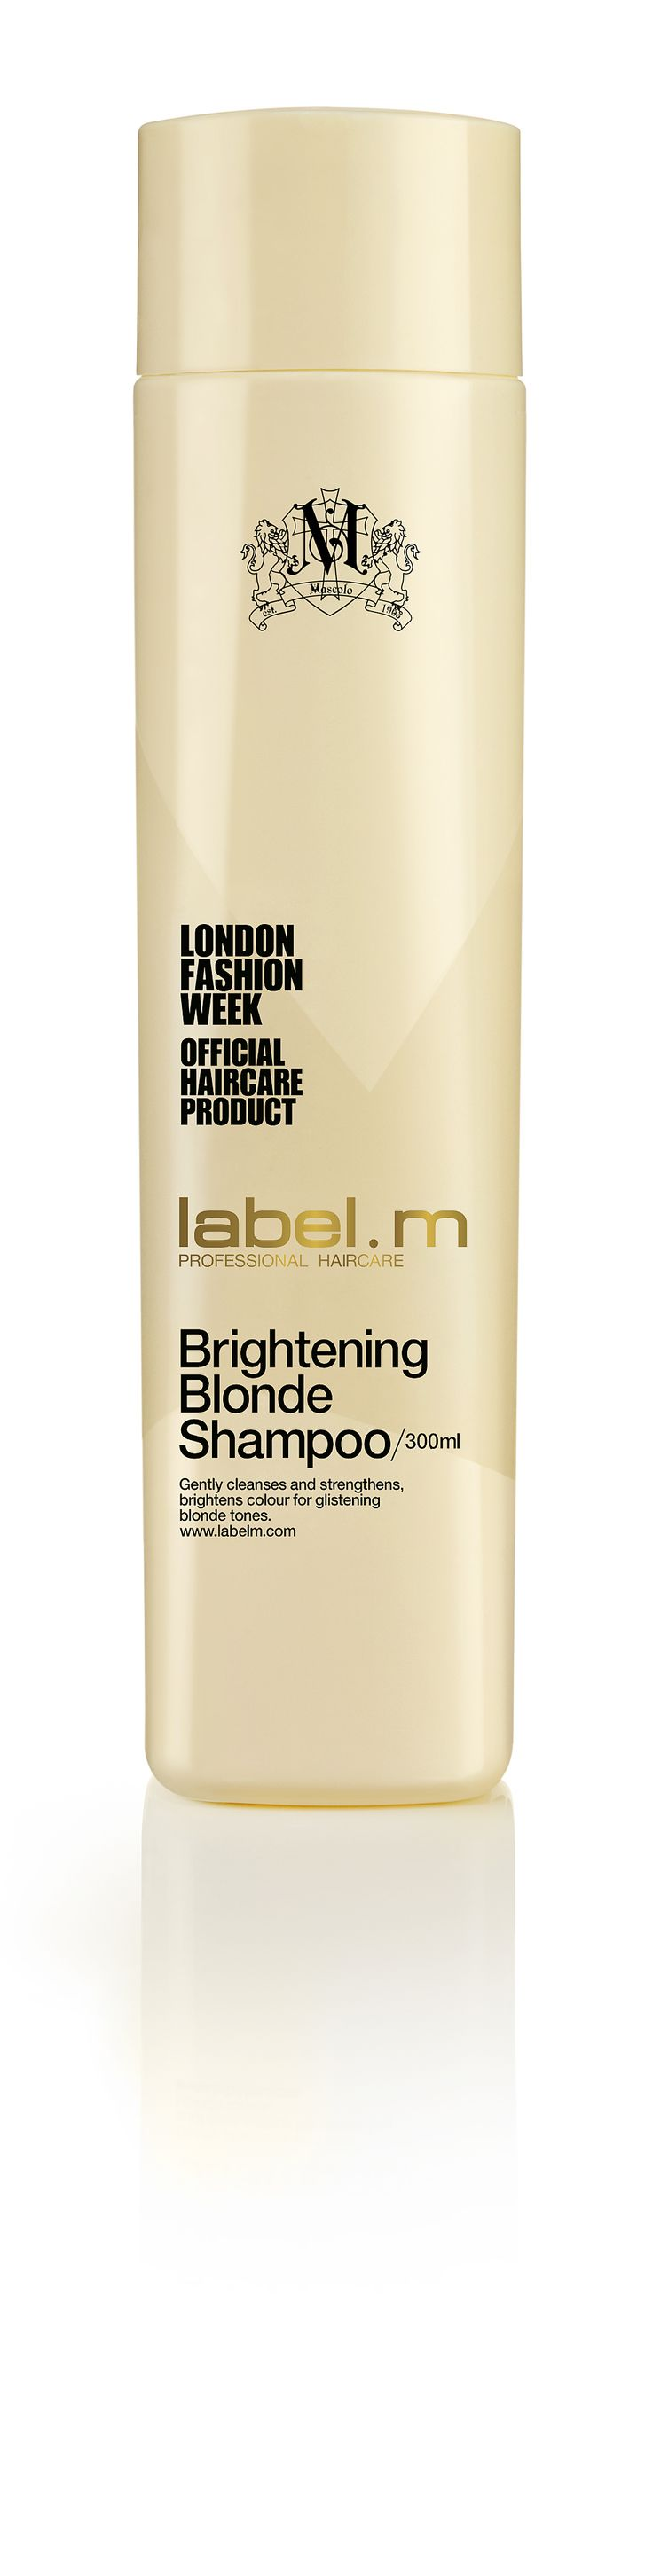 label.m Brightening Blonde Shampoo. Gradually lightens and brightens while gently cleansing and nourishing hair to prevent dryness, tangling and breakage. Contains natural extracts including White Pineapple, Mamaki Tea, and Lemon which activate the lightening process, enhance shine and freshen the scalp, without damaging or drying out hair.